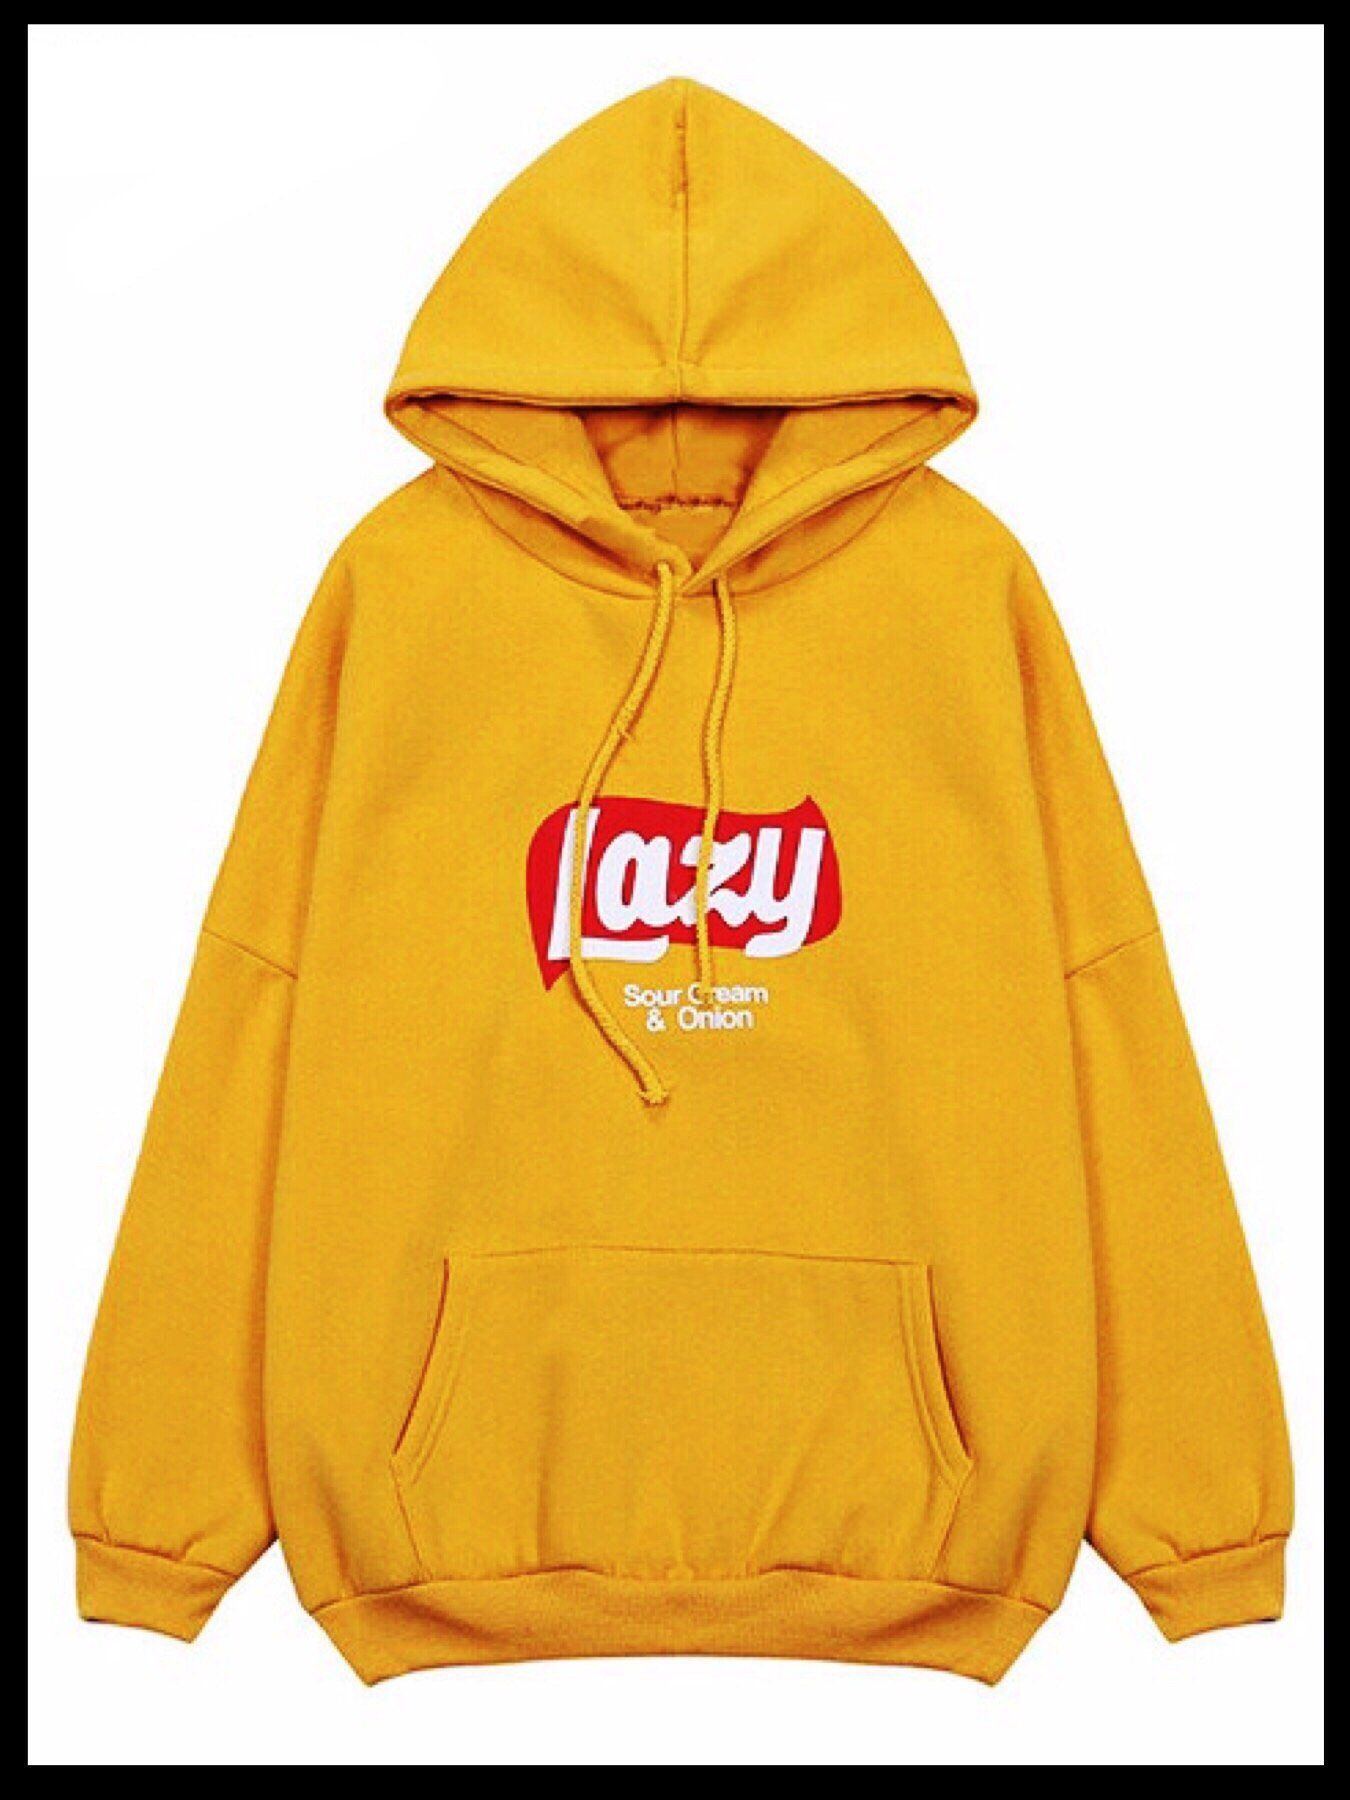 02c555871 Lazy Hoodie (Sour Cream & Onion) in 2019 | Products | Hoodies ...